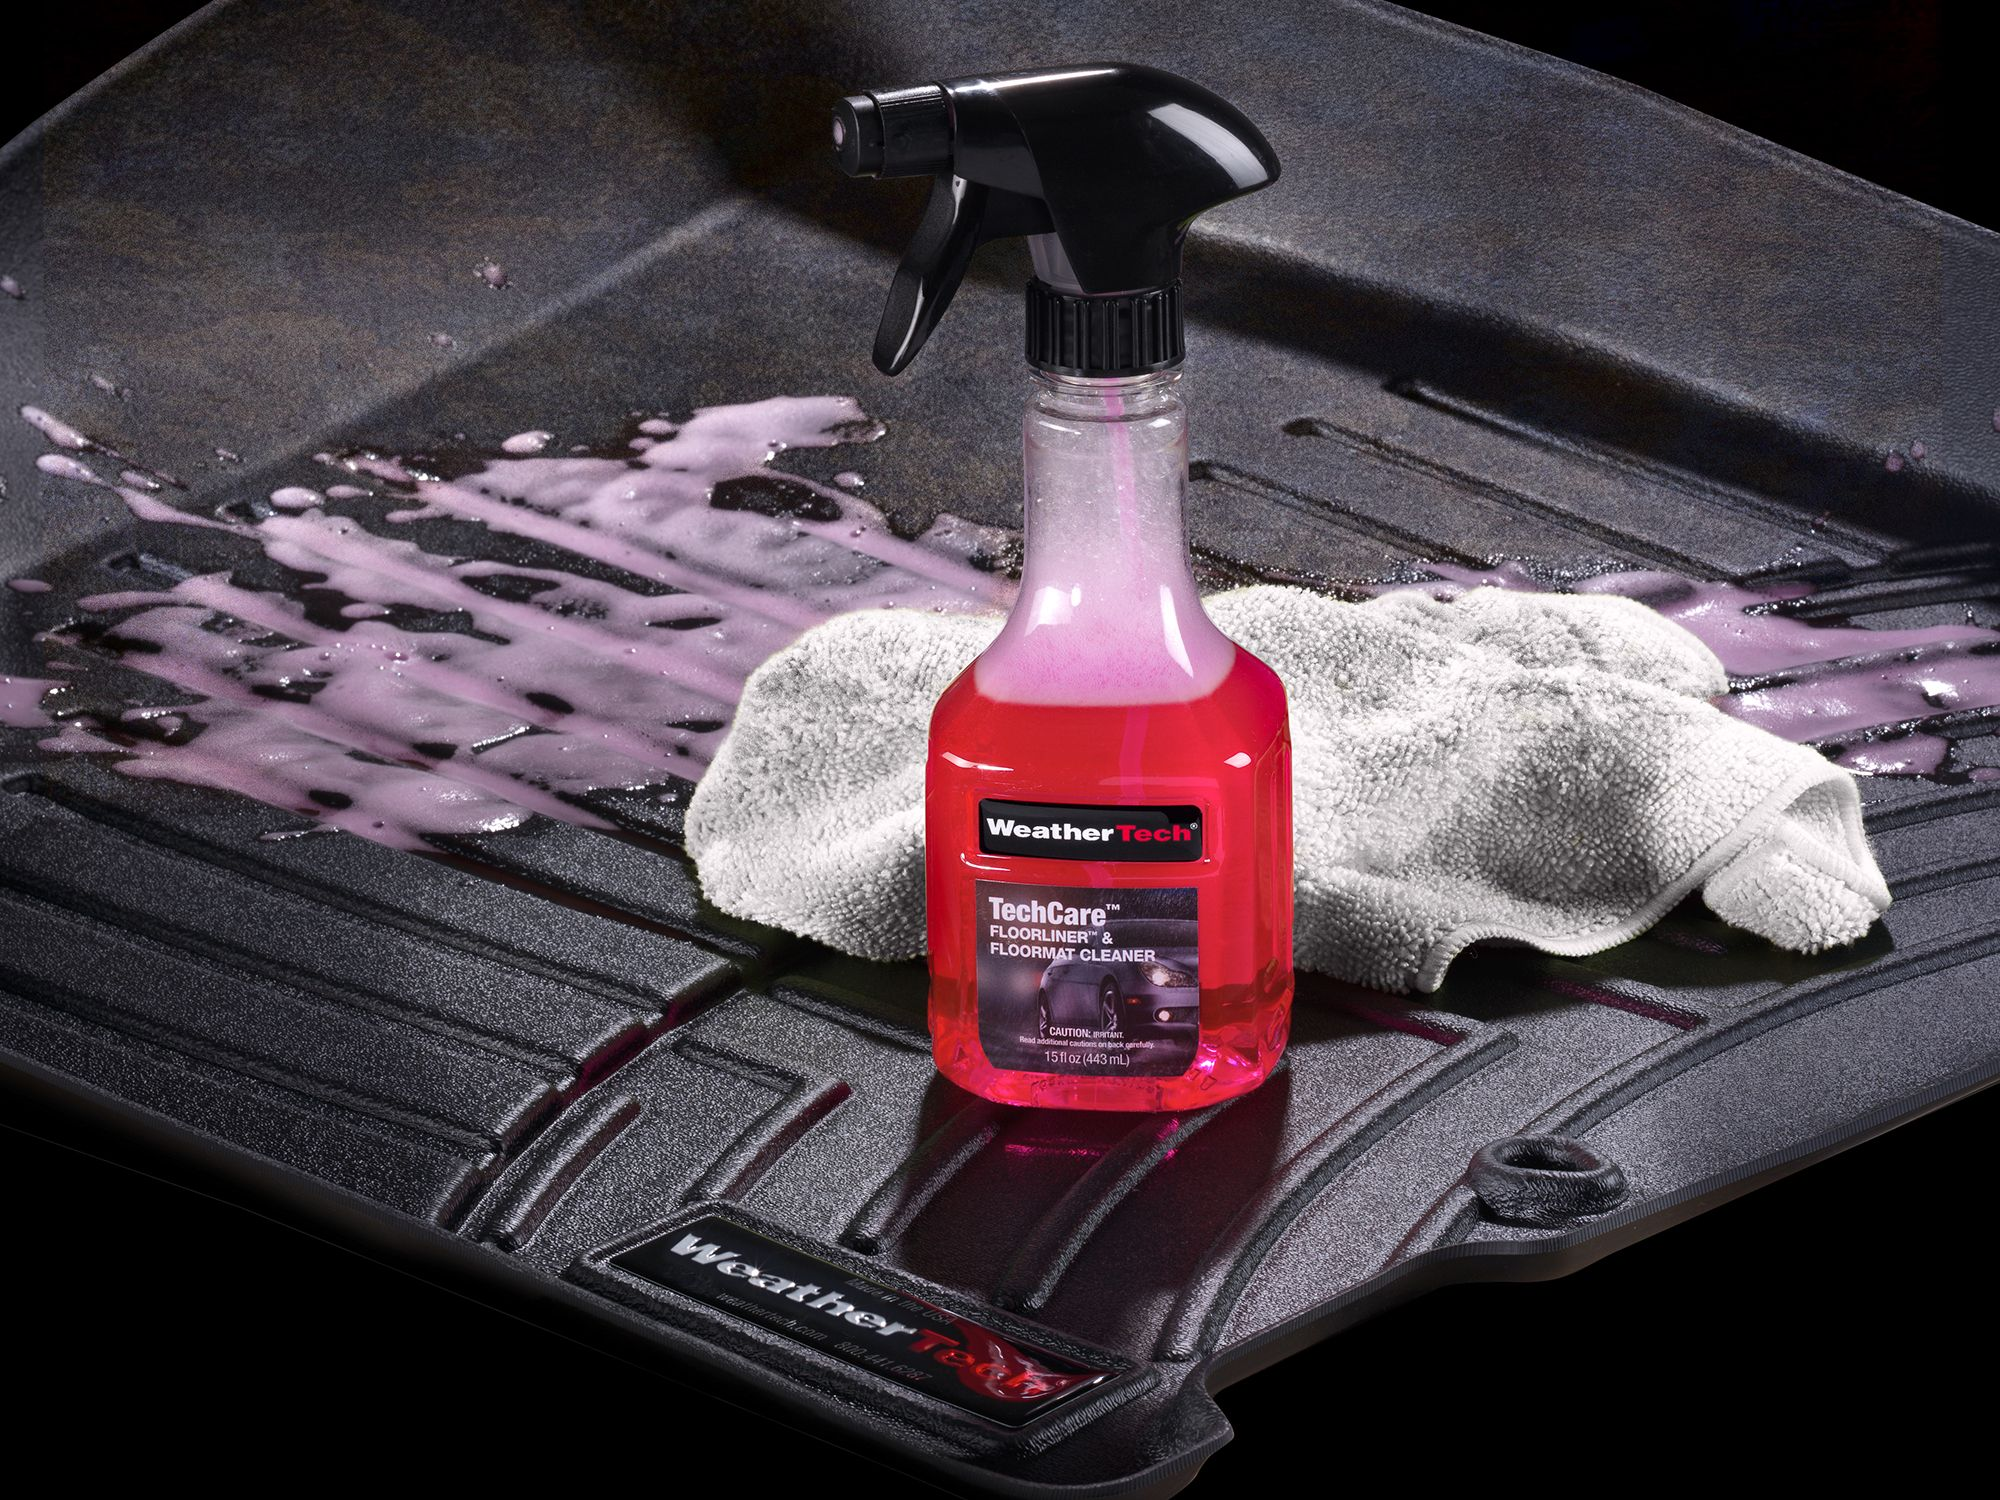 Weathertech floor mats cleaning - Techcare Floor Mat Cleaner And Protector Kit Combined Dissolves Grease And Oil Stains And Leaves A Like New Appearance And Anti Flip Finish On Your Floor